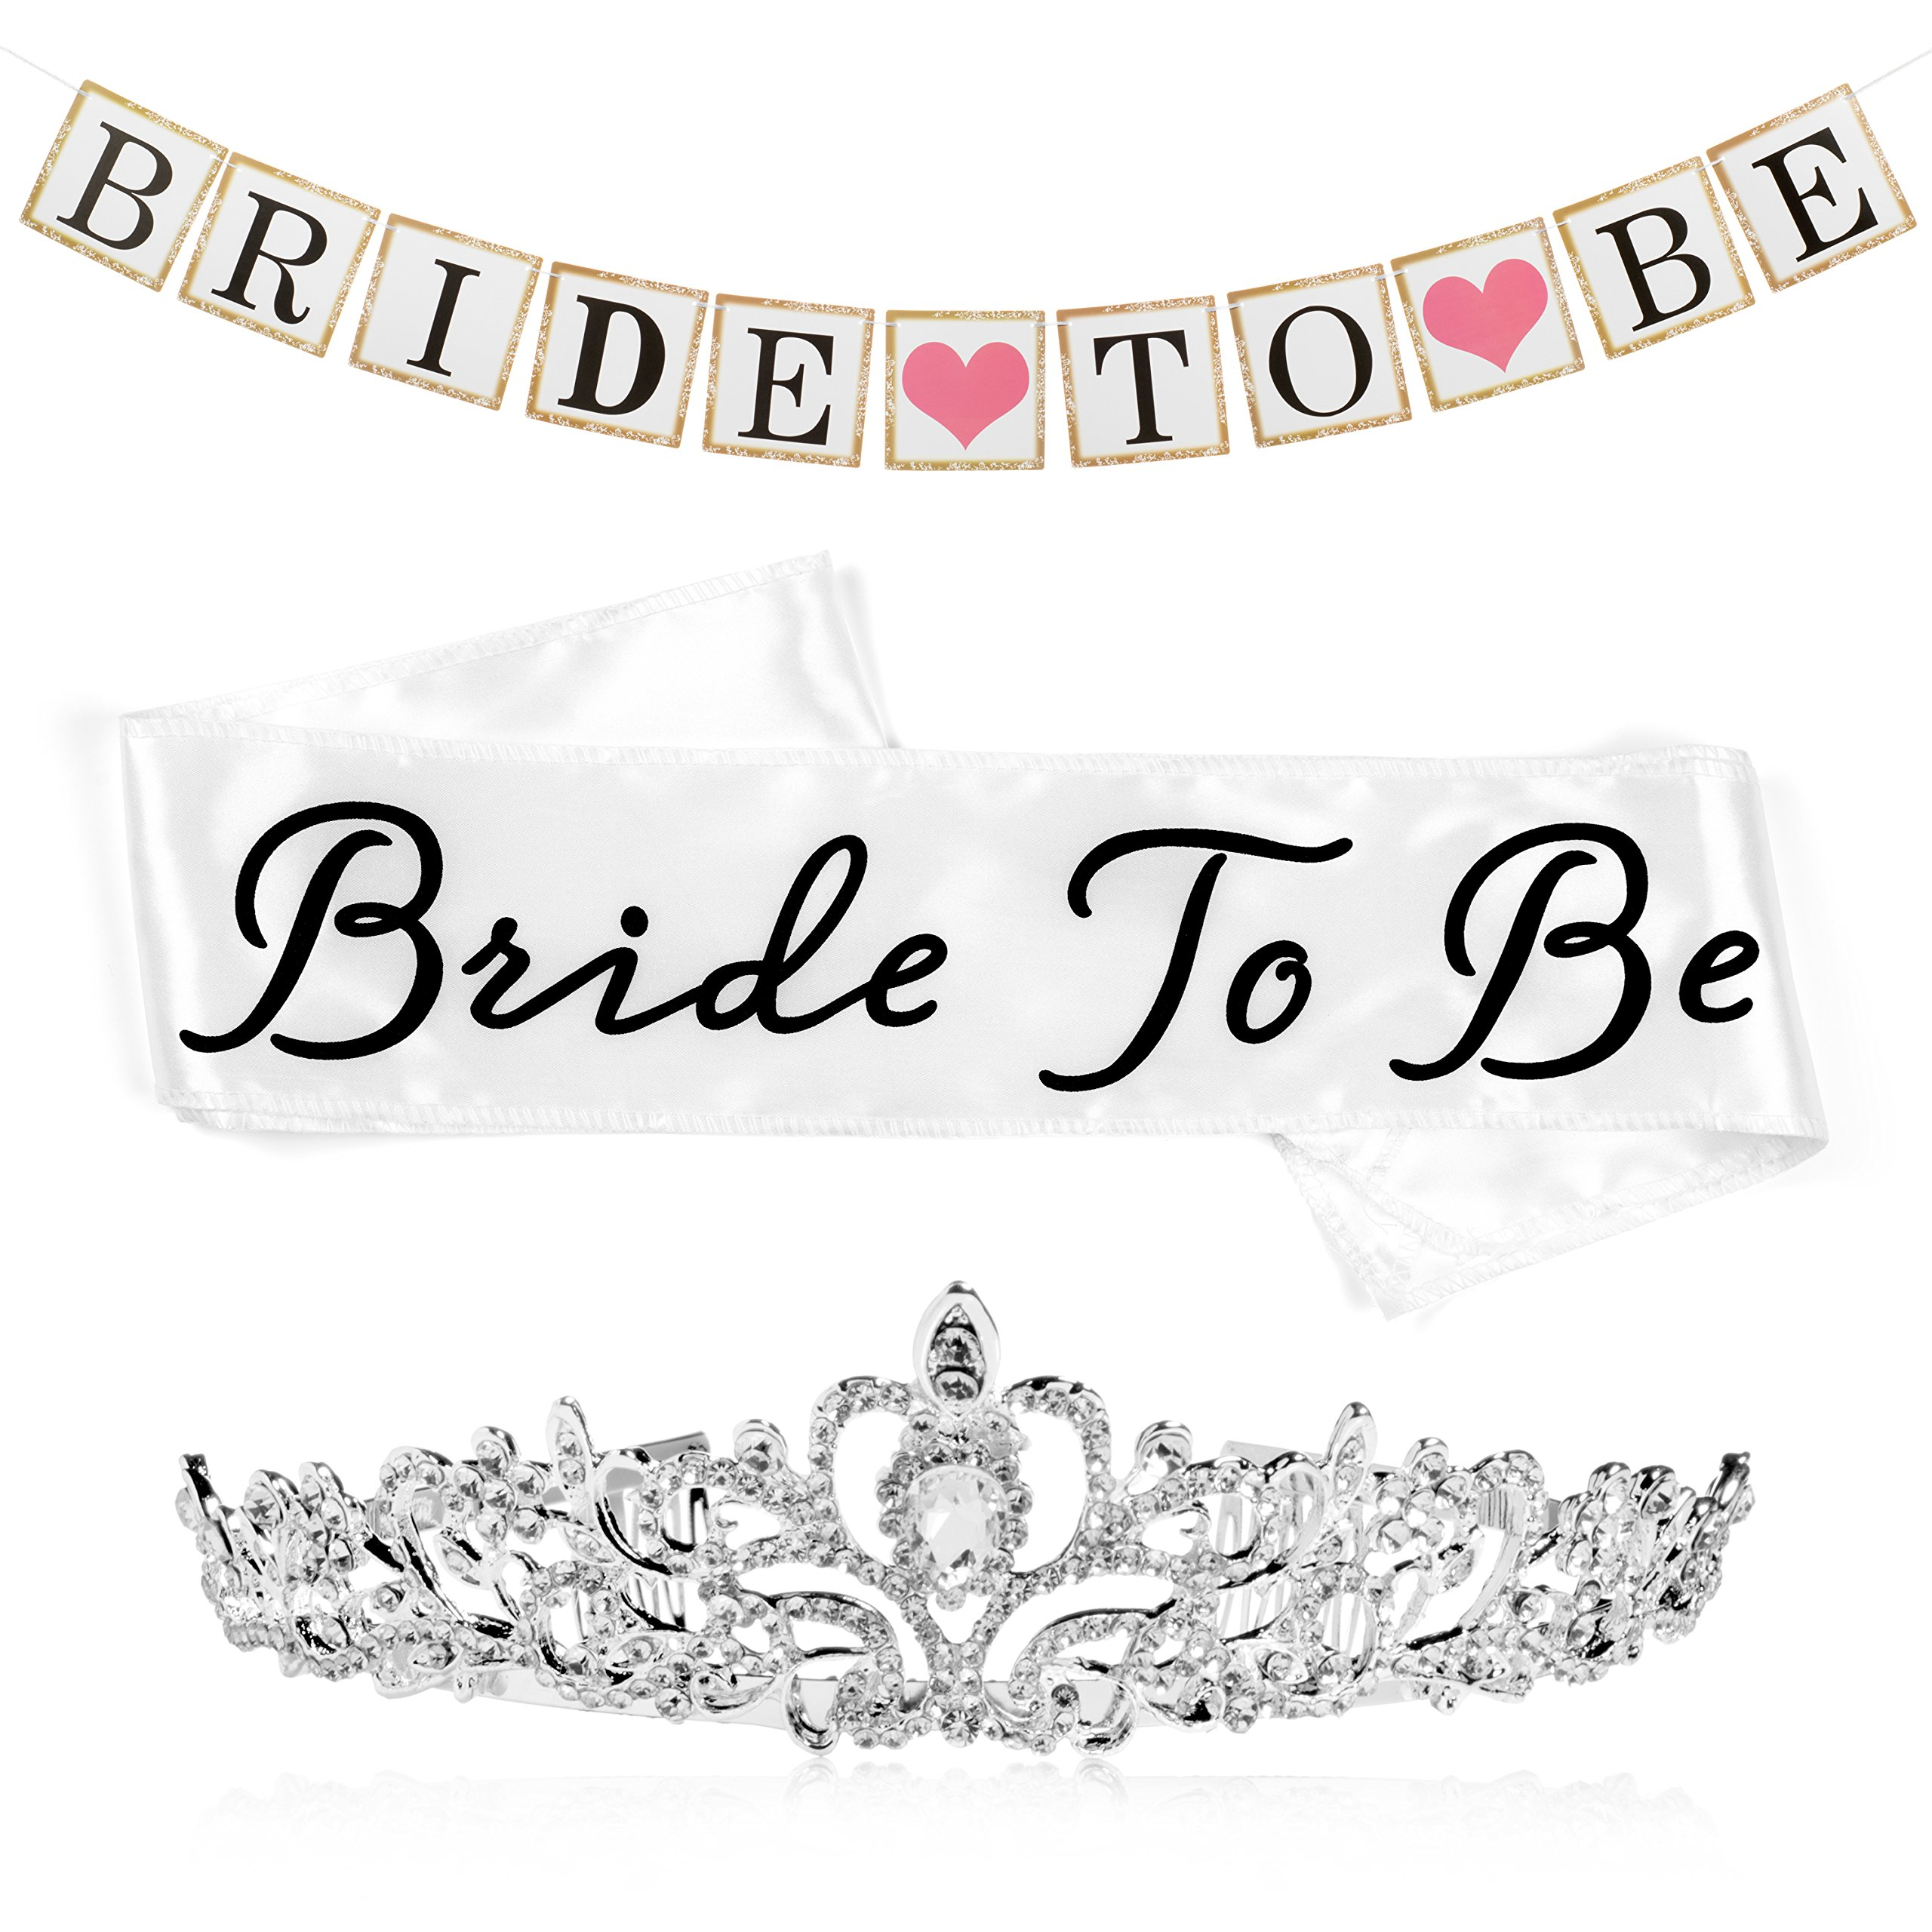 Bride to Be Bachelorette Party Decoration and Shower Kit, White Satin Sash, Metal and Rhinestone Tiara, and Bride To Be Banner with Ribbon by Sunrise Party Supplies